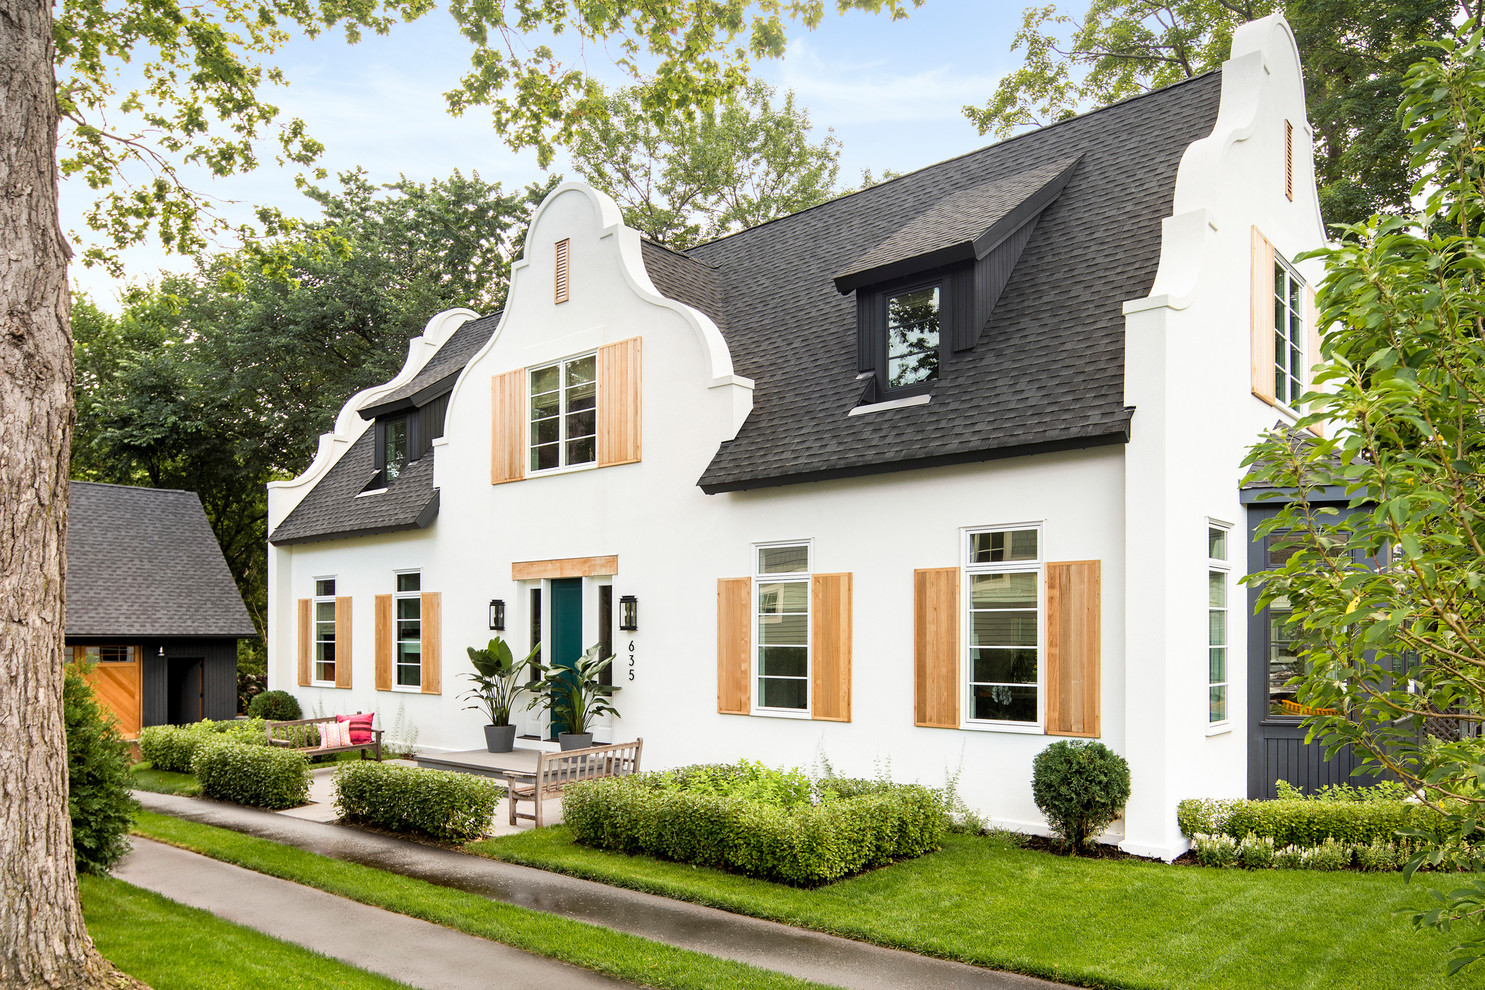 16 Splendid Eclectic Exterior Designs You'll Wish Your Home Had